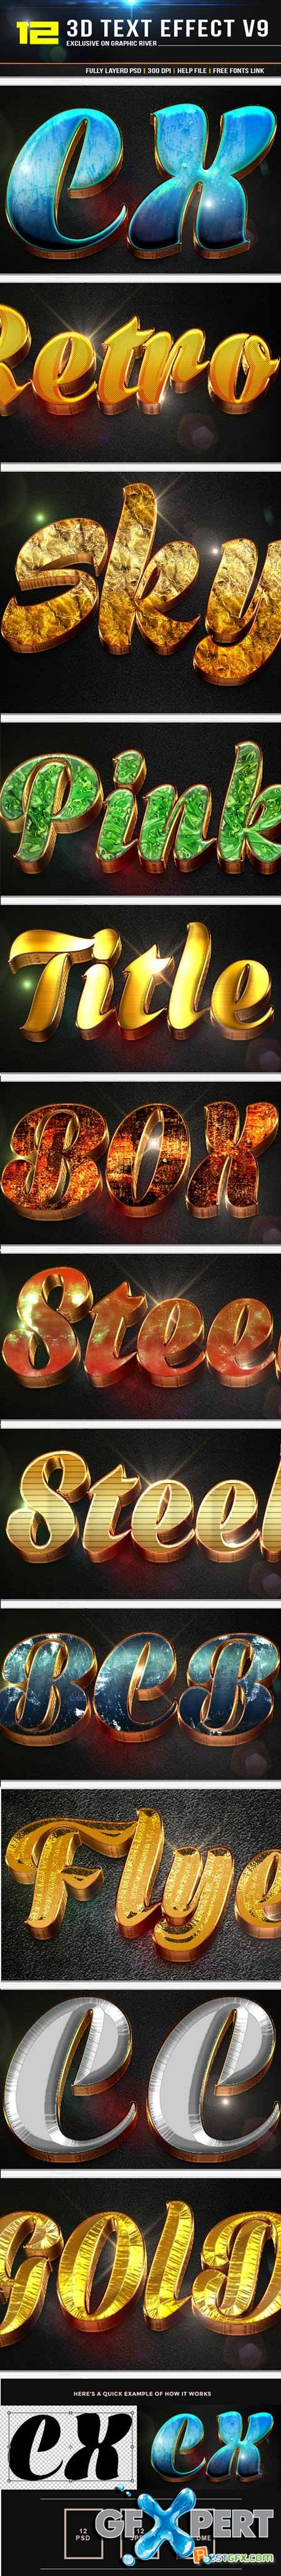 Graphicriver 12 3d Text Effect v9 11553283